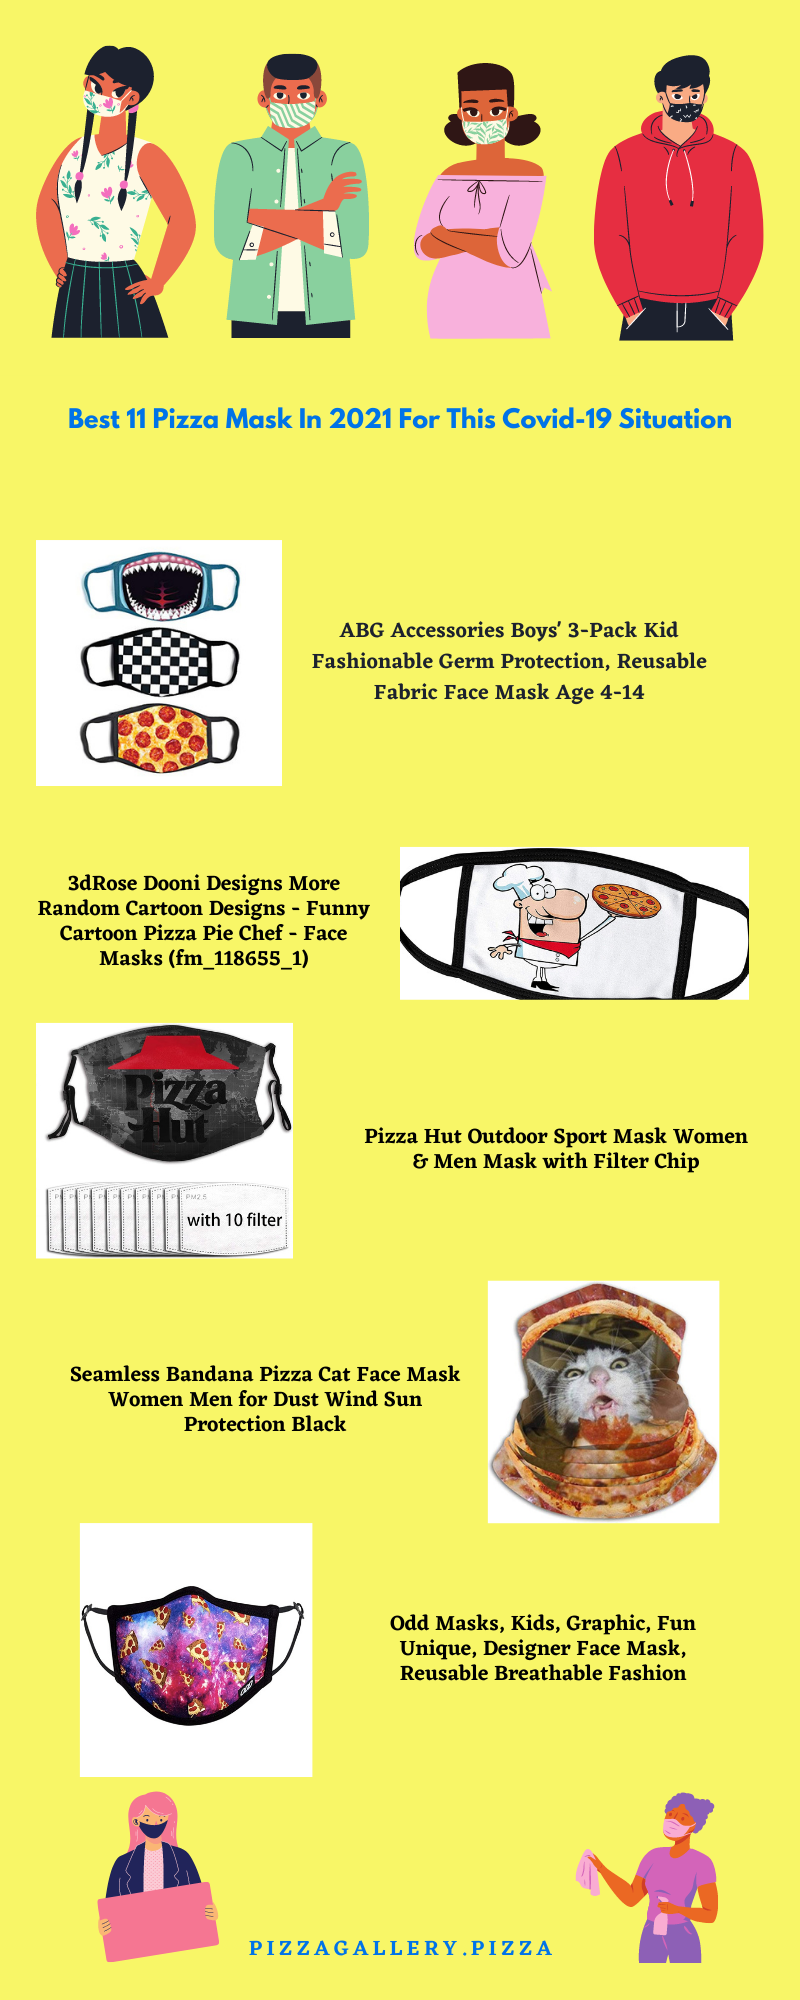 Best 11 pizza mask in 2021 for this Covid-19 situation